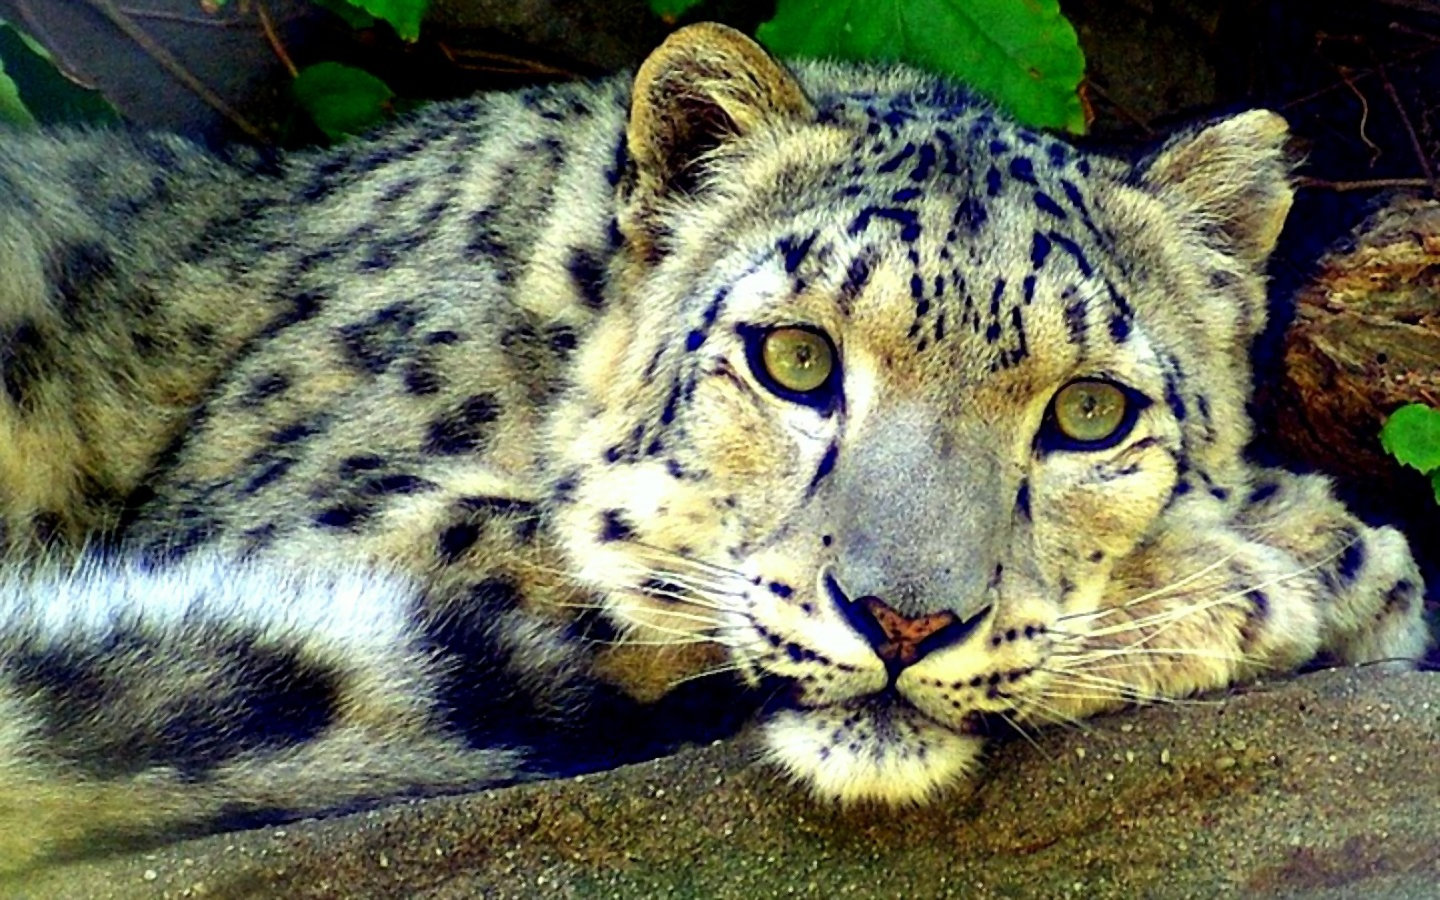 High resolution Snow Leopard hd 1440x900 background ID:34481 for computer